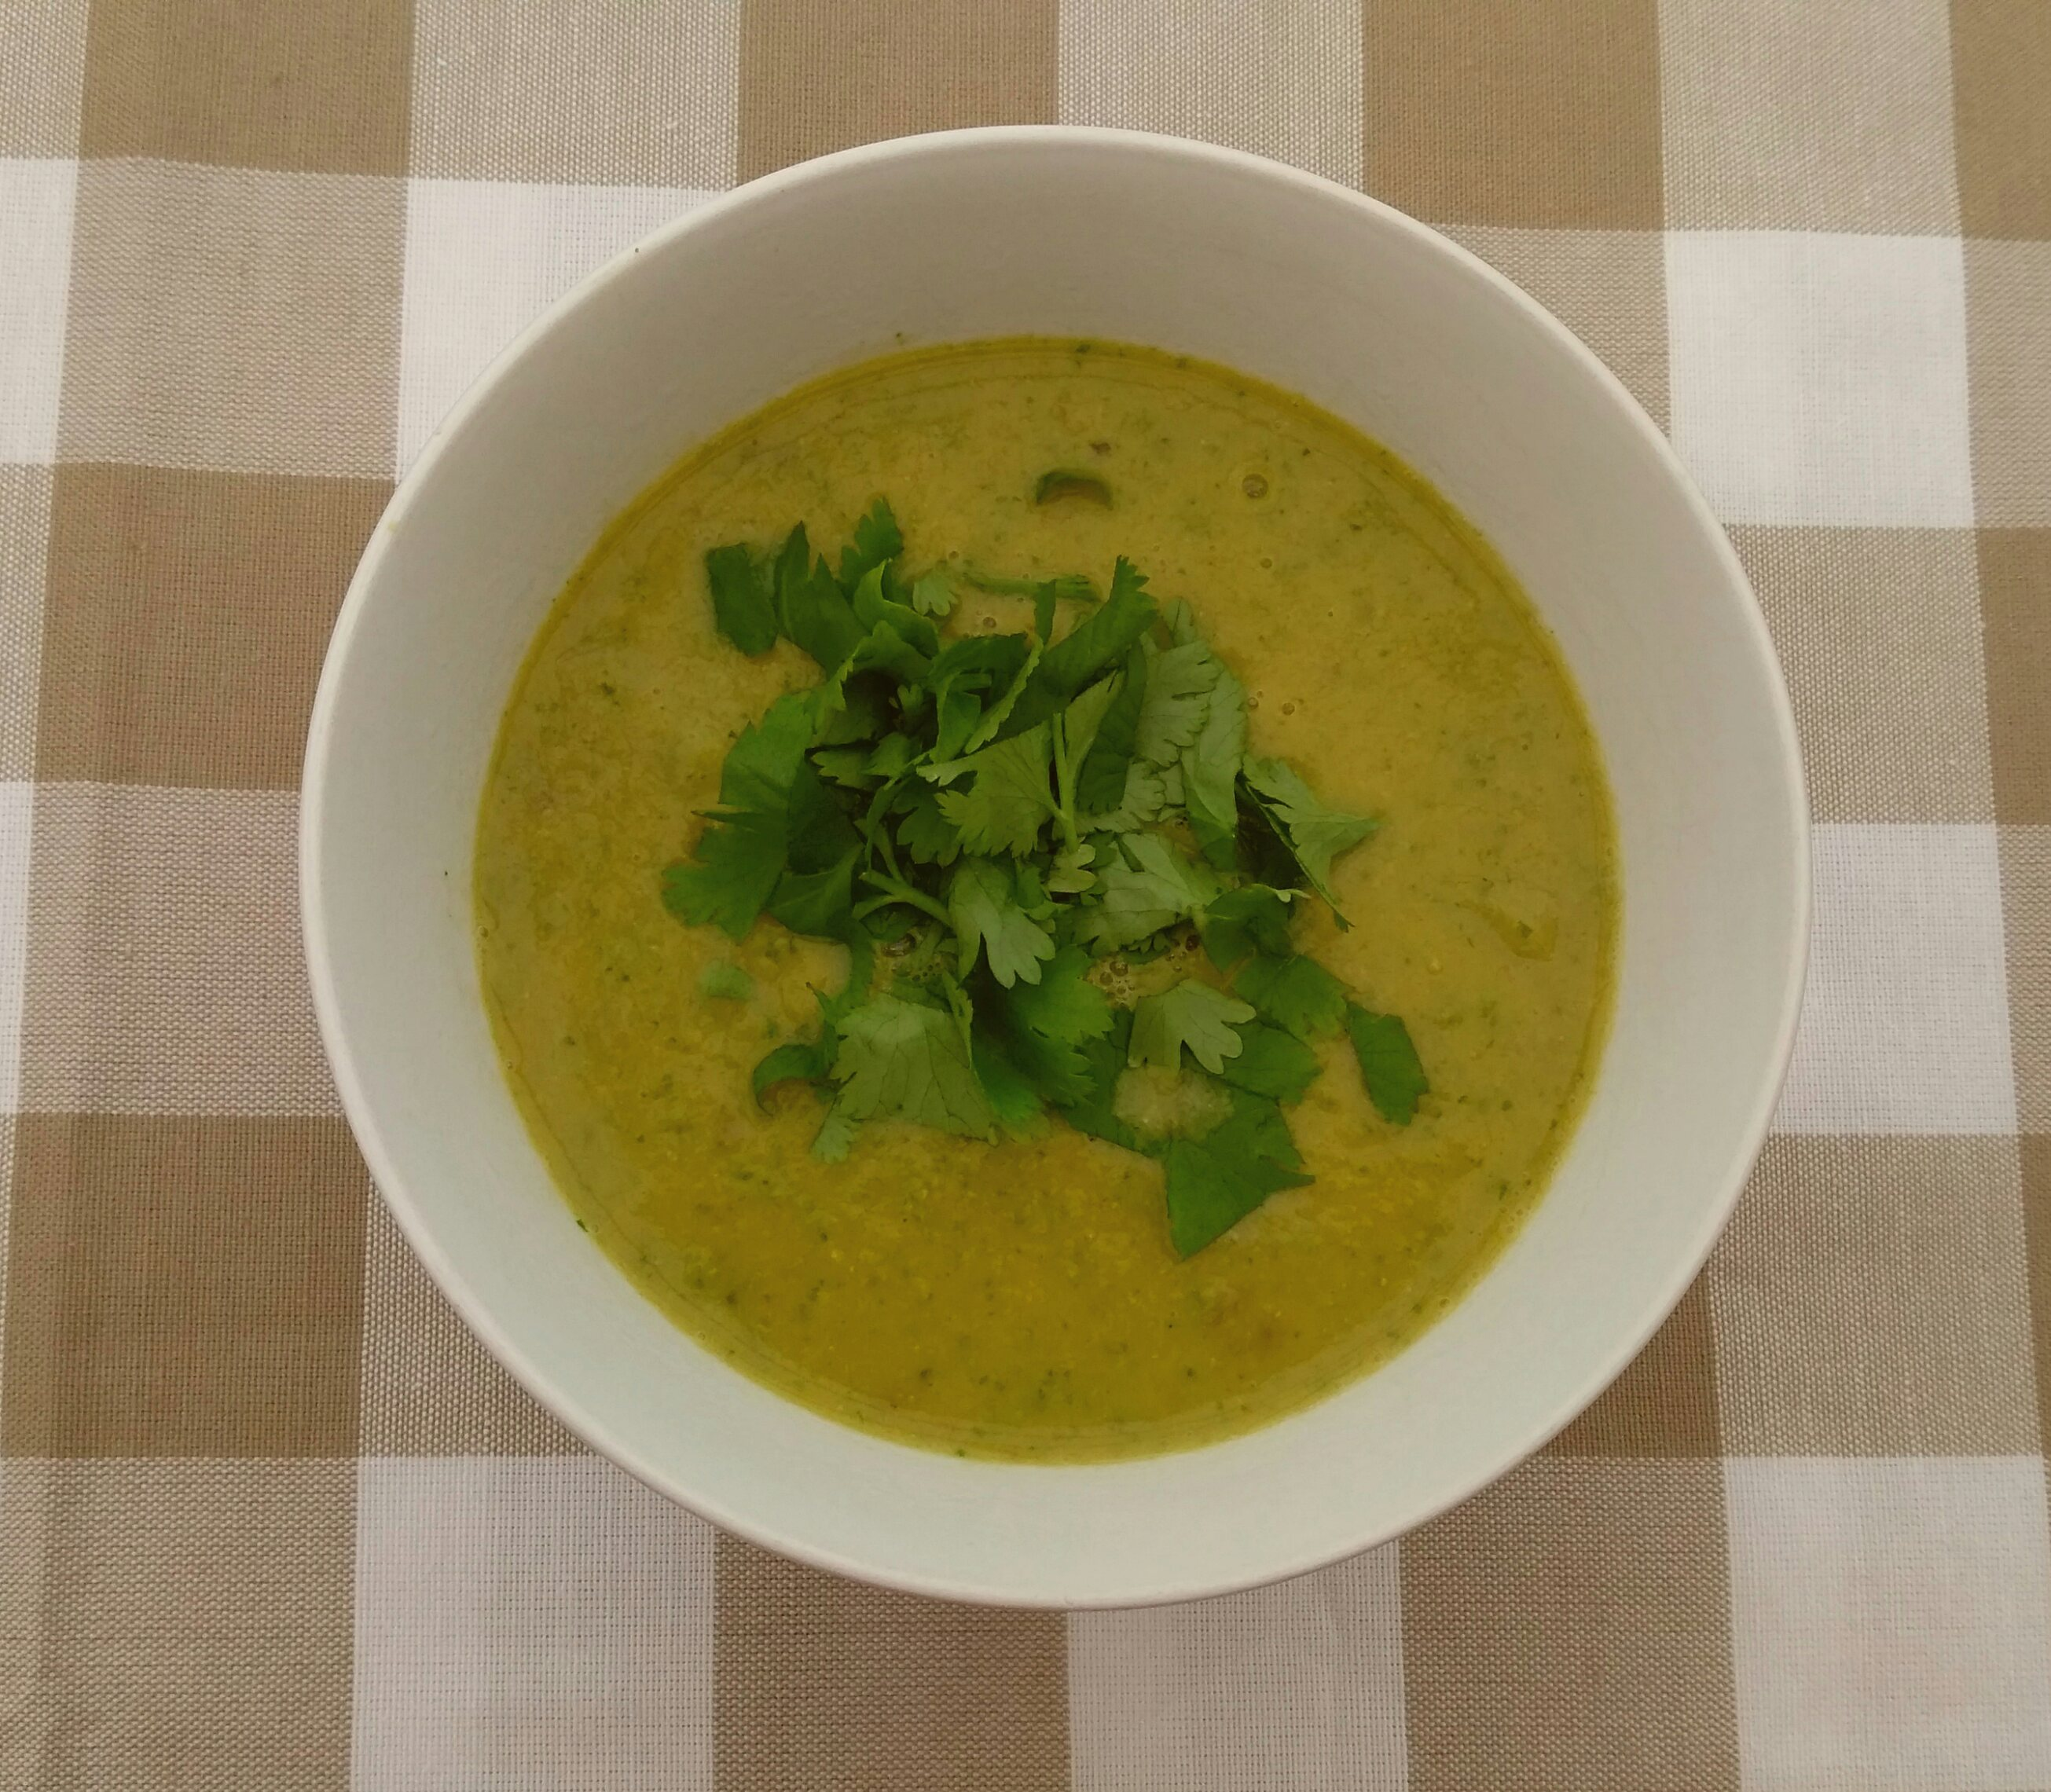 Chickpea soup recipe